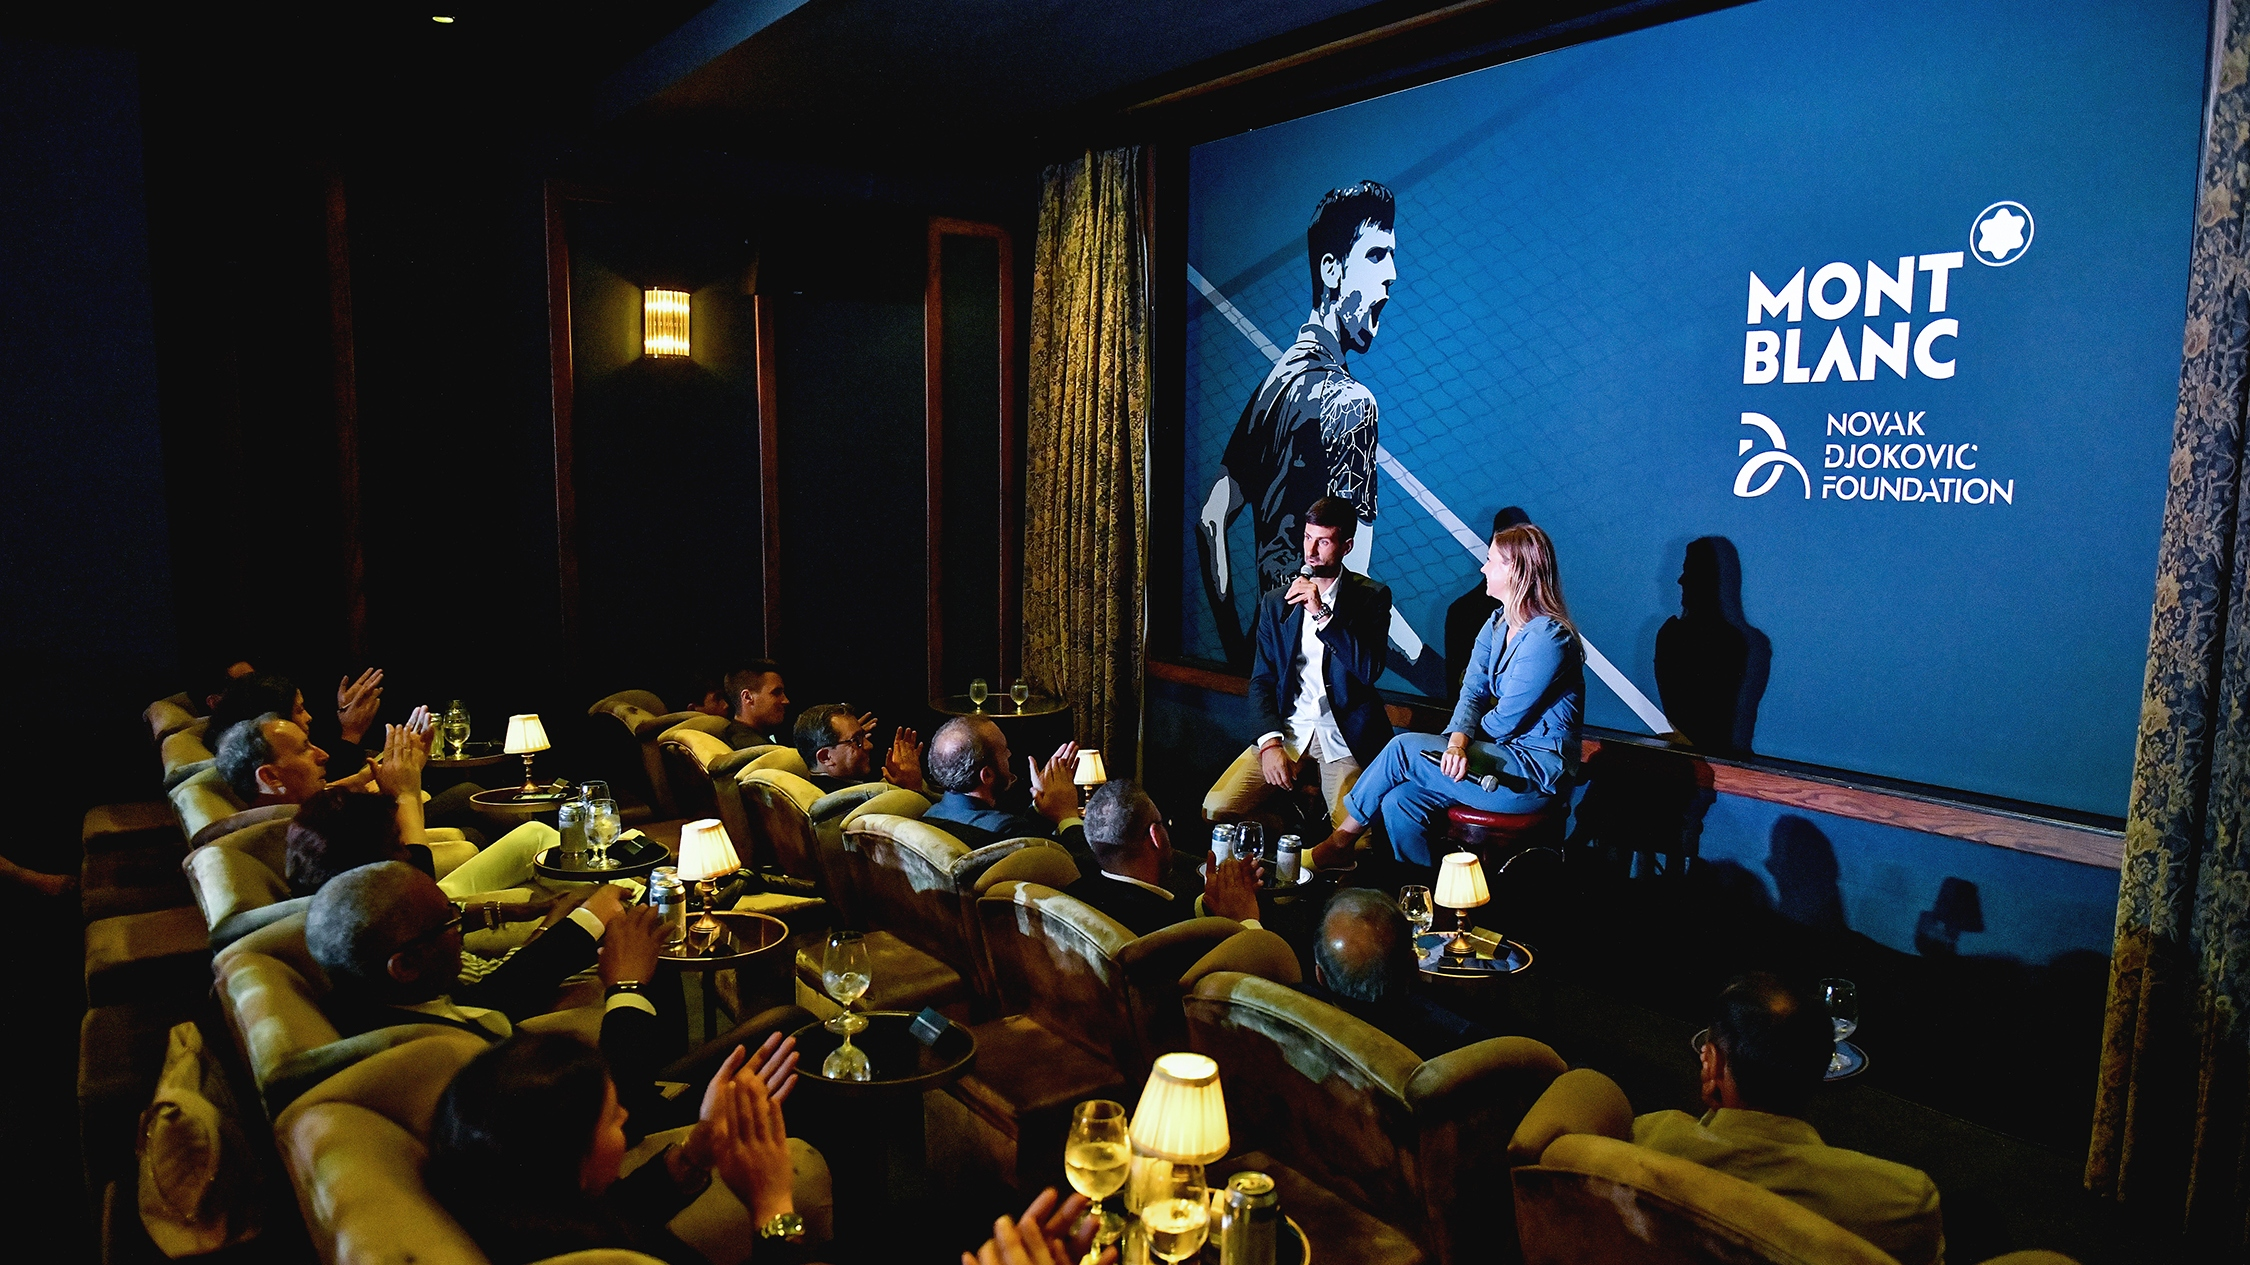 Novak Djokovic discusses a special-edition Montblanc pen at a private screening room in Chelsea.